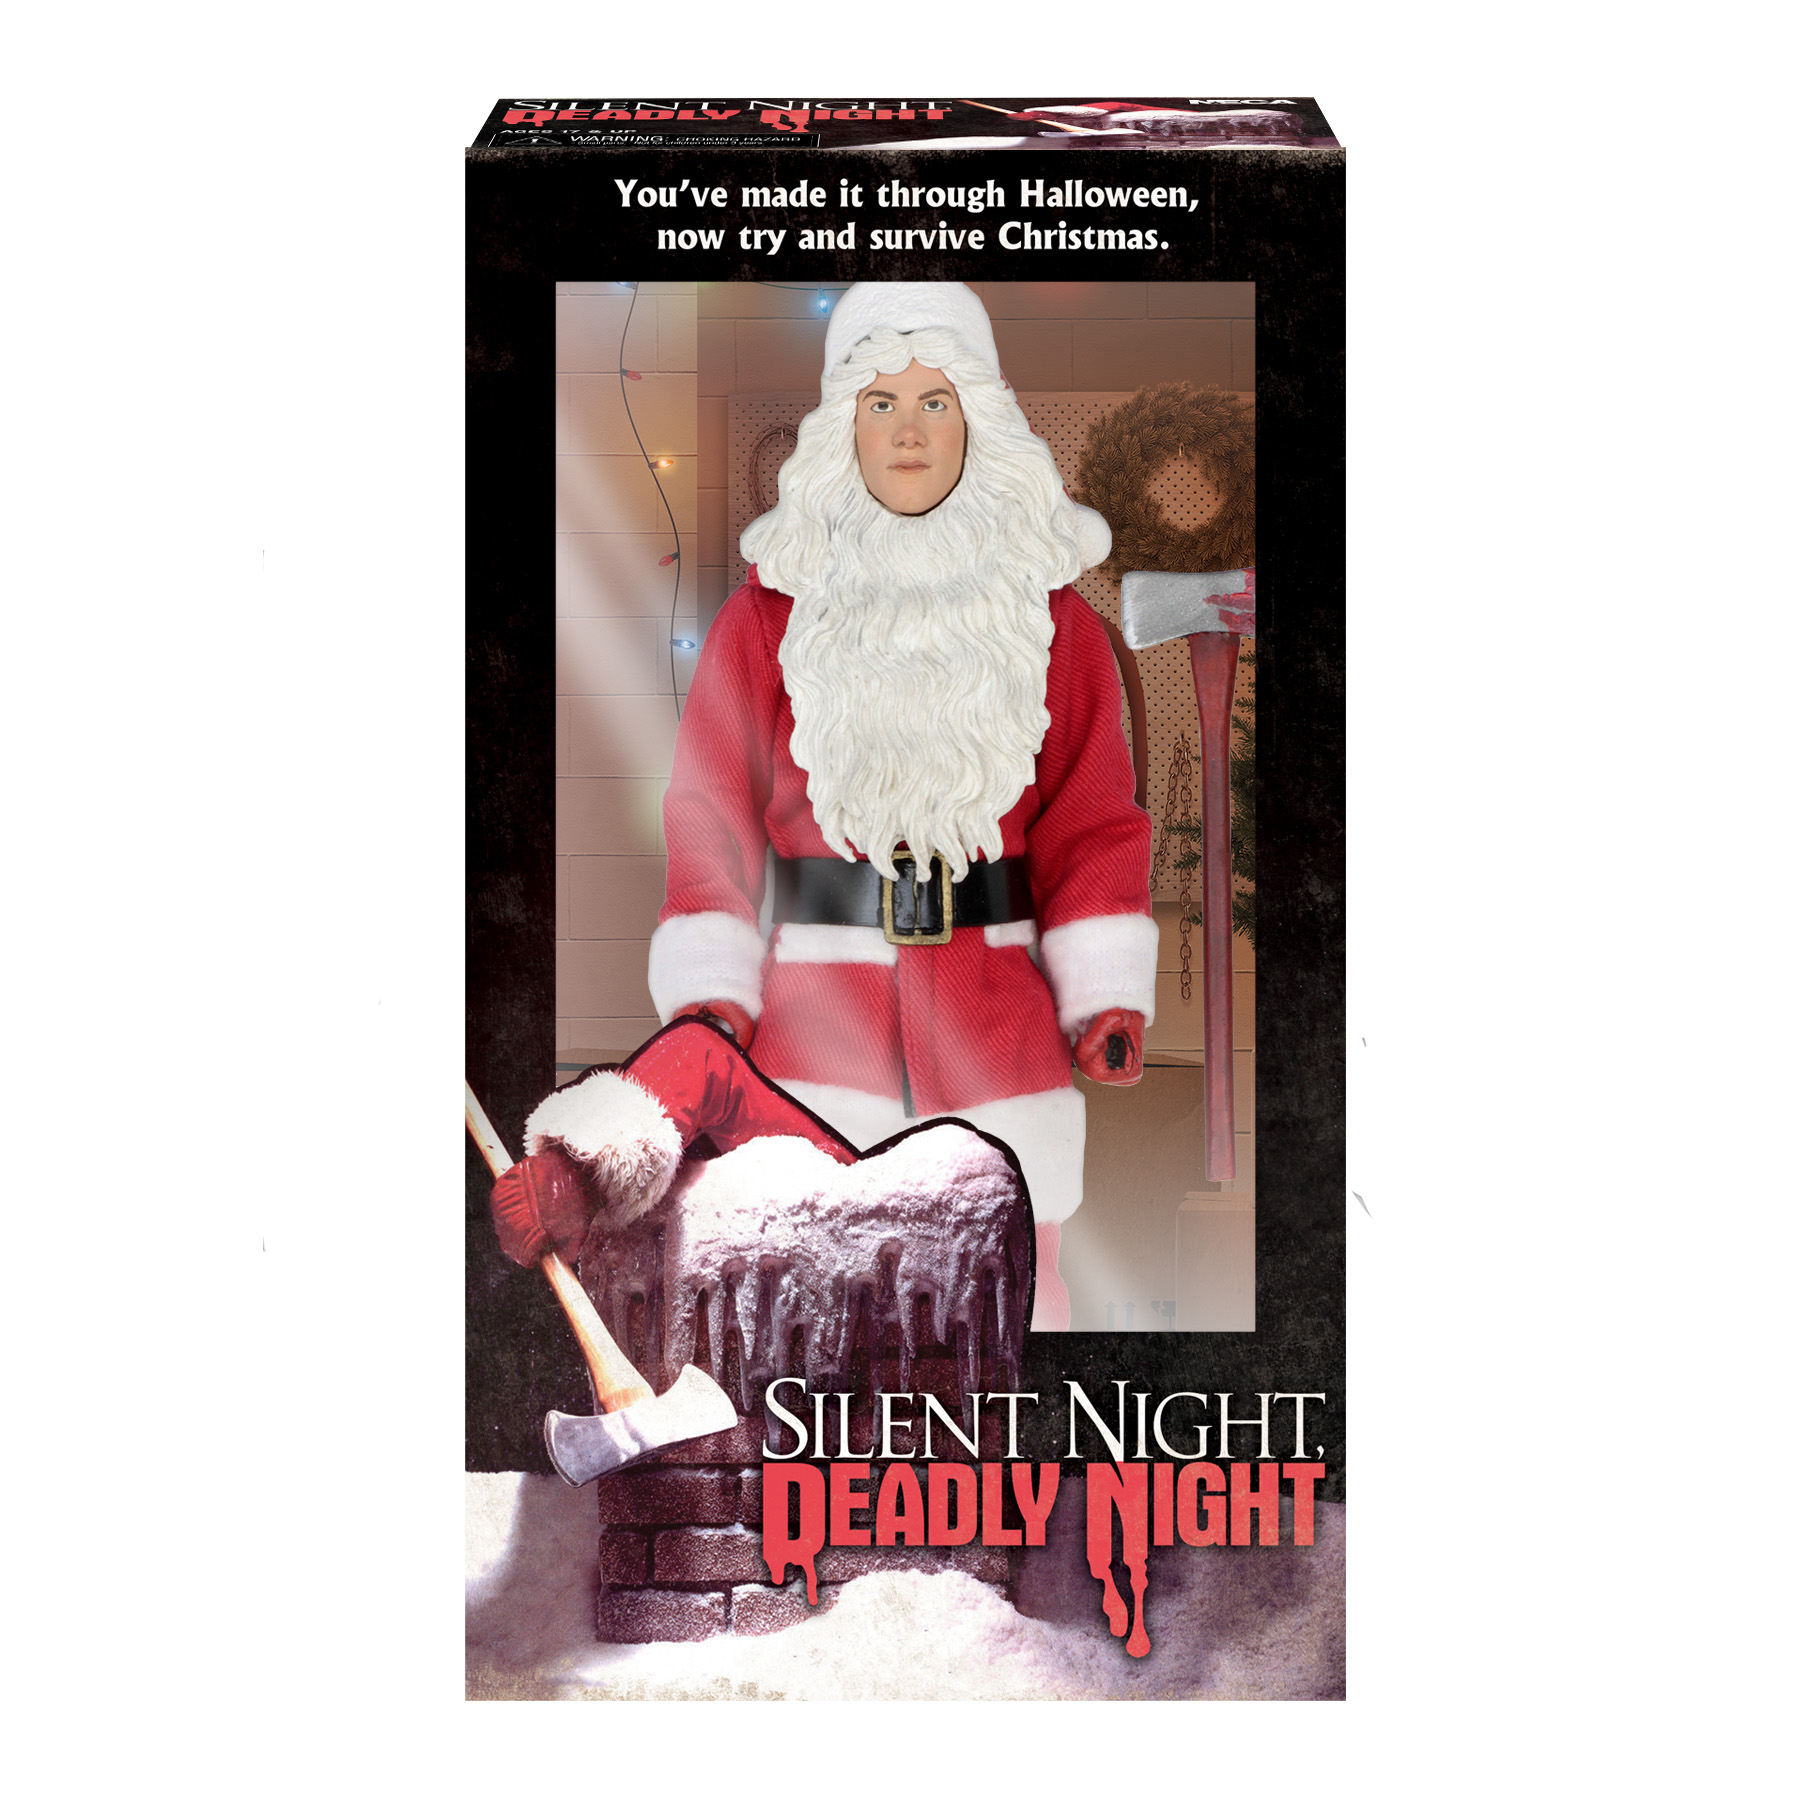 Silent night christmas card controversy define - Christmas cards 2018